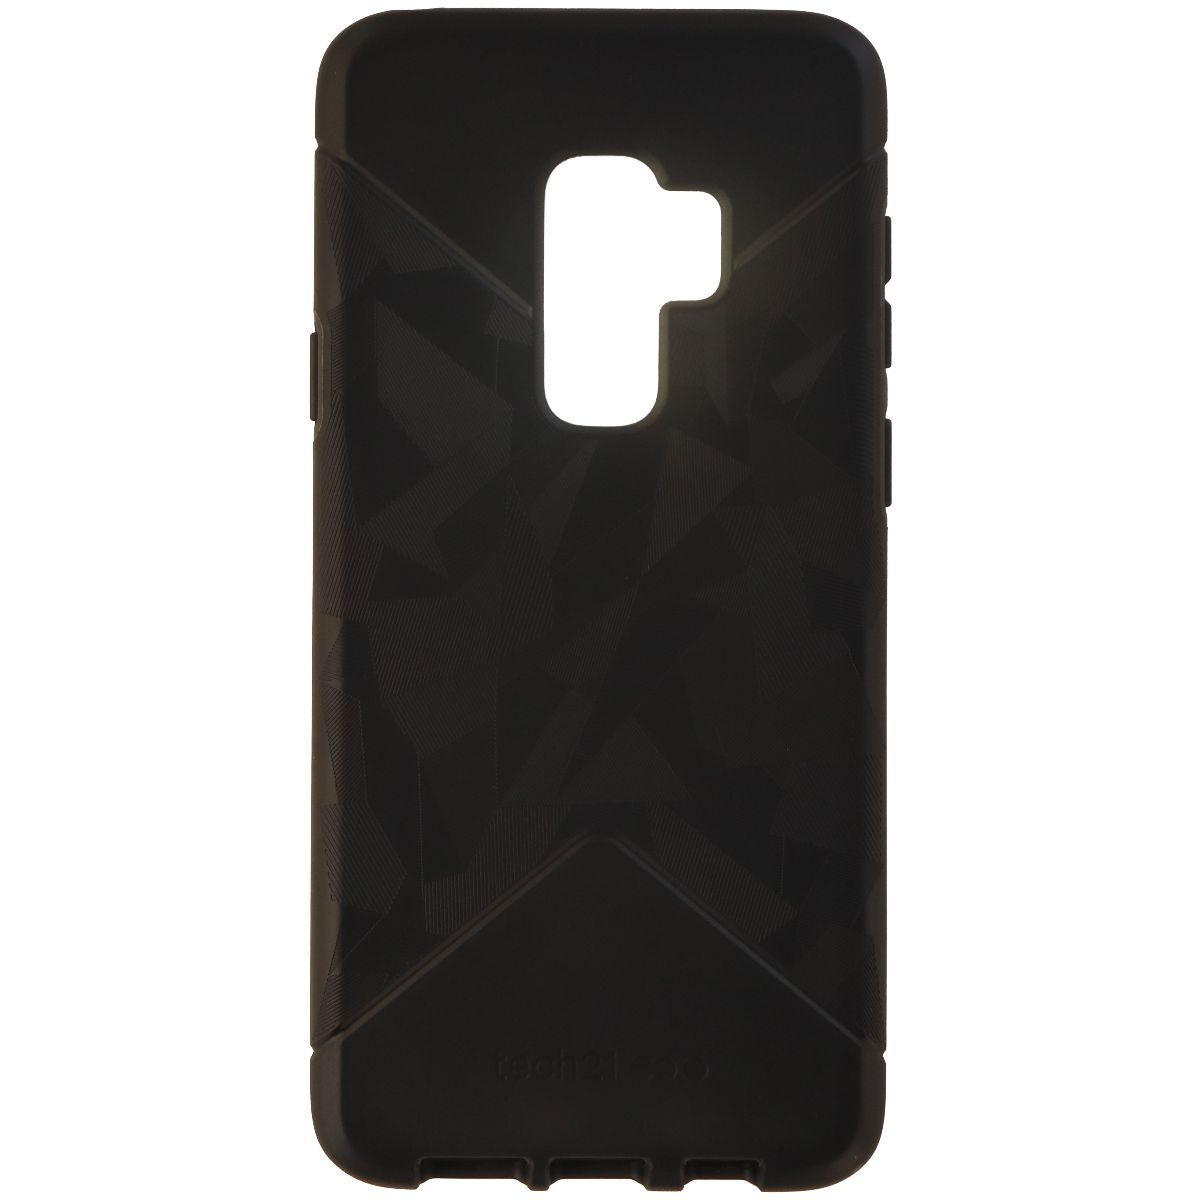 tech21 Evo Tactical Protective Case Cover for Samsung Galaxy S9+ - Black